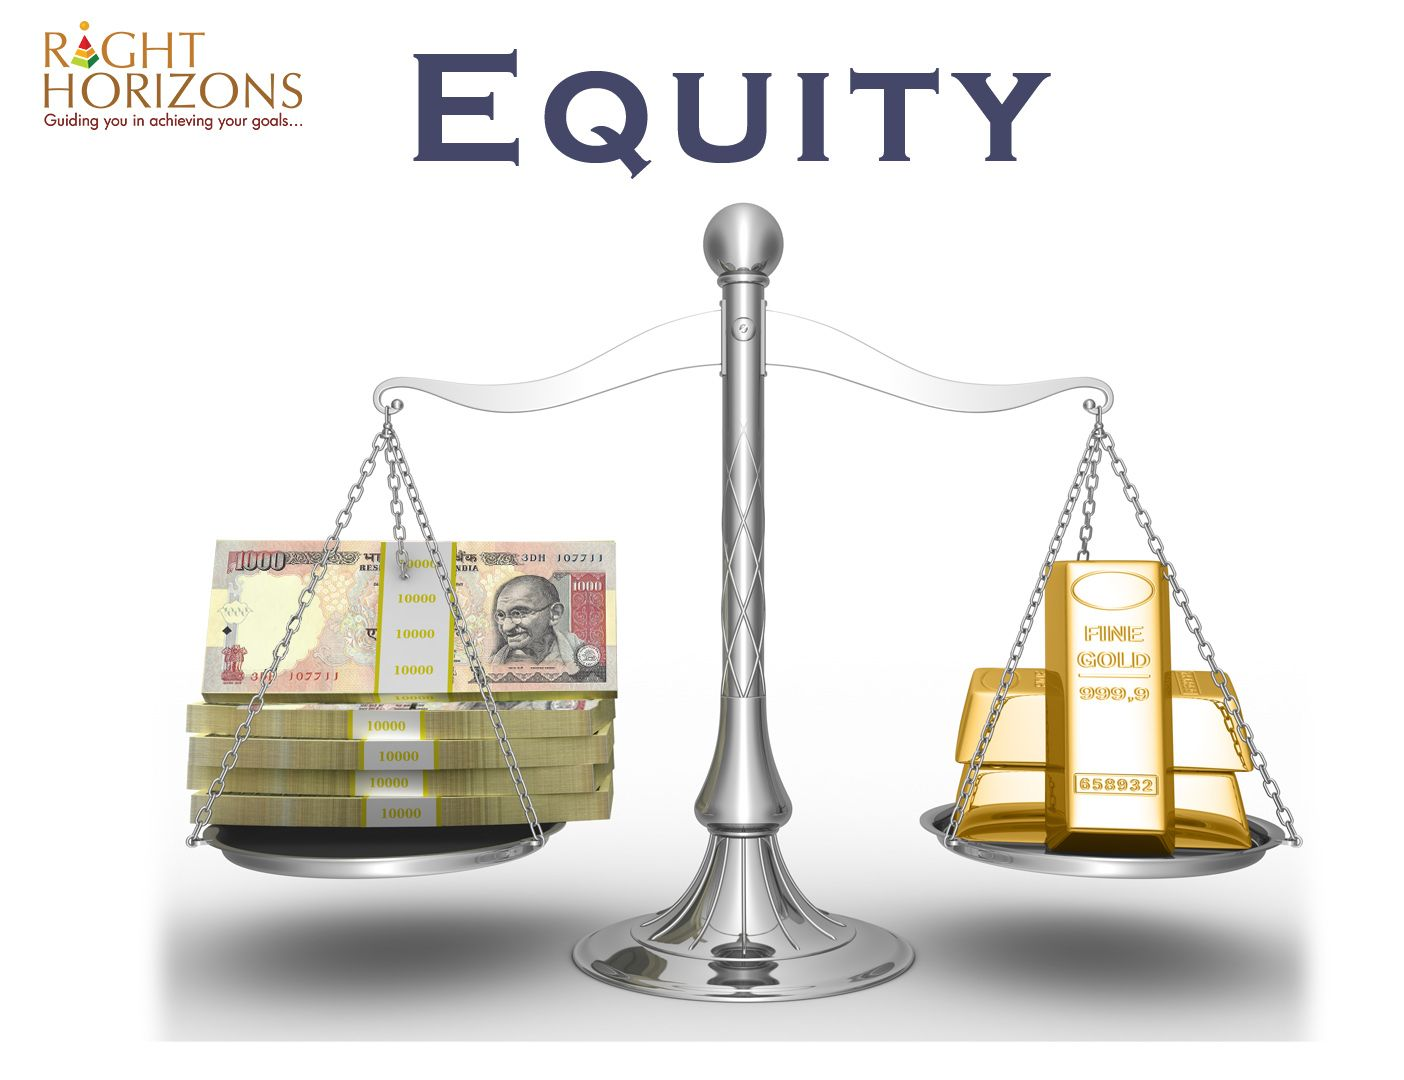 Equity shares financial planning financial advisors